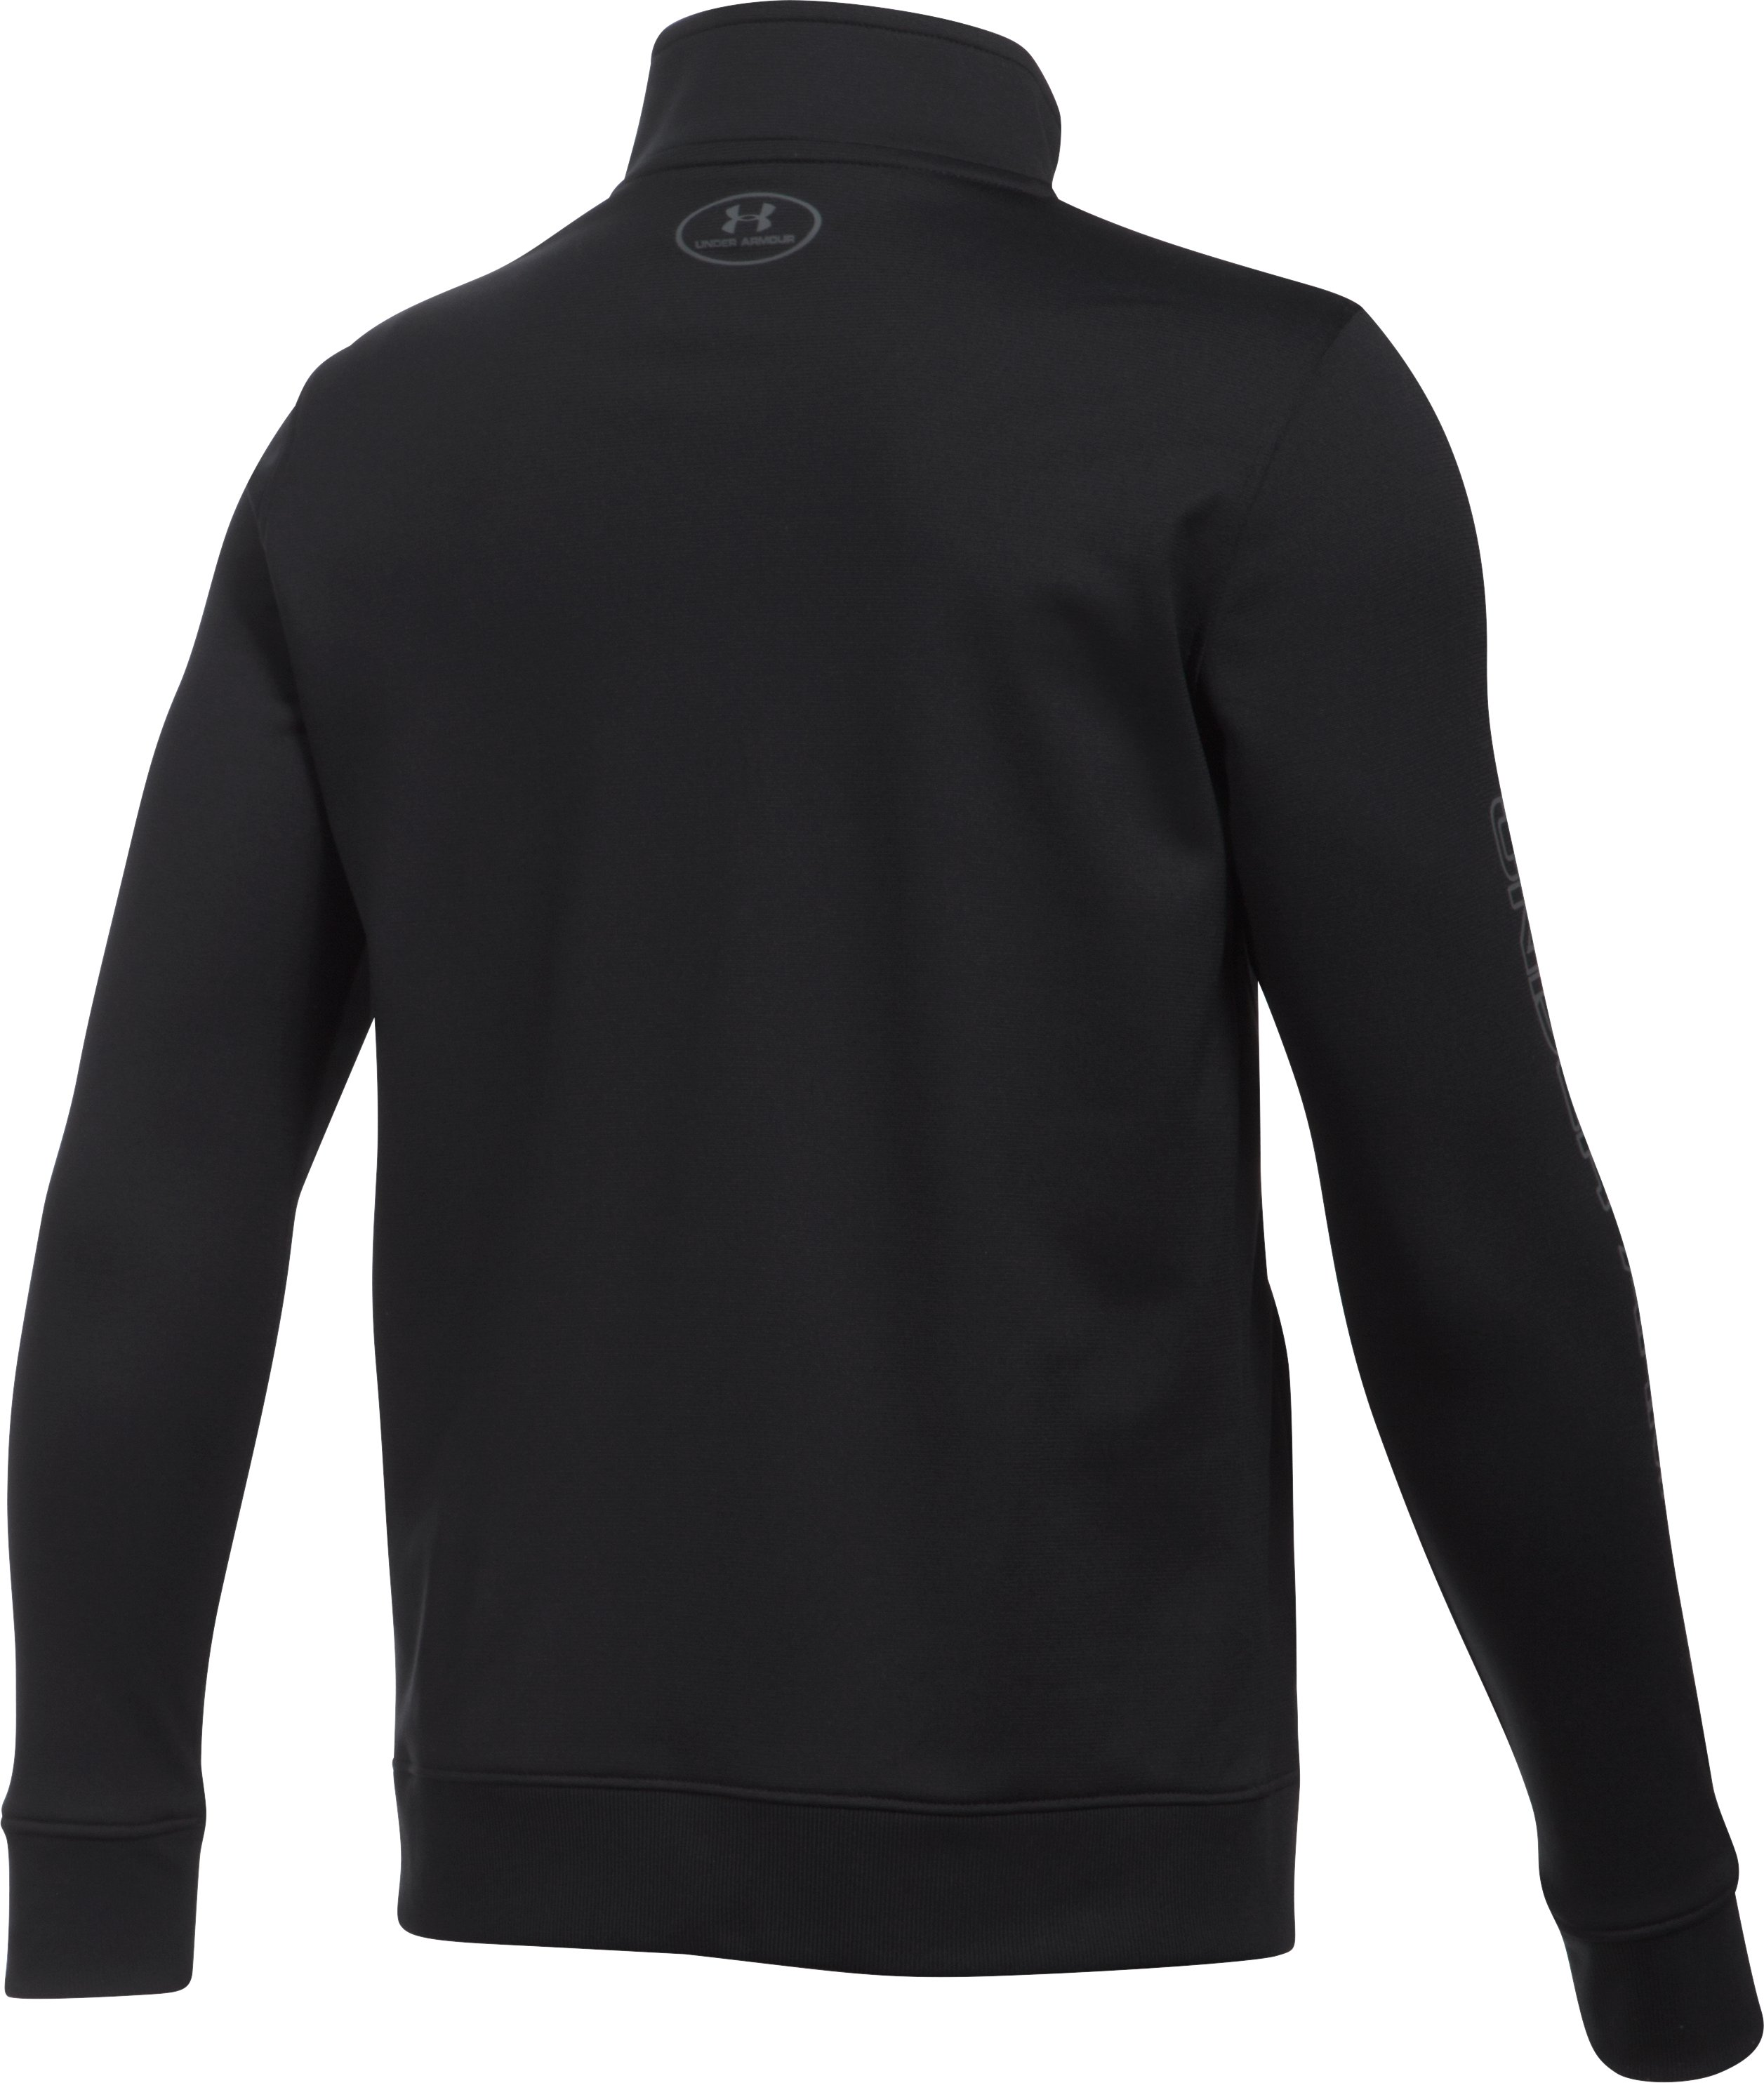 Boys' UA Interval Jacket, Black